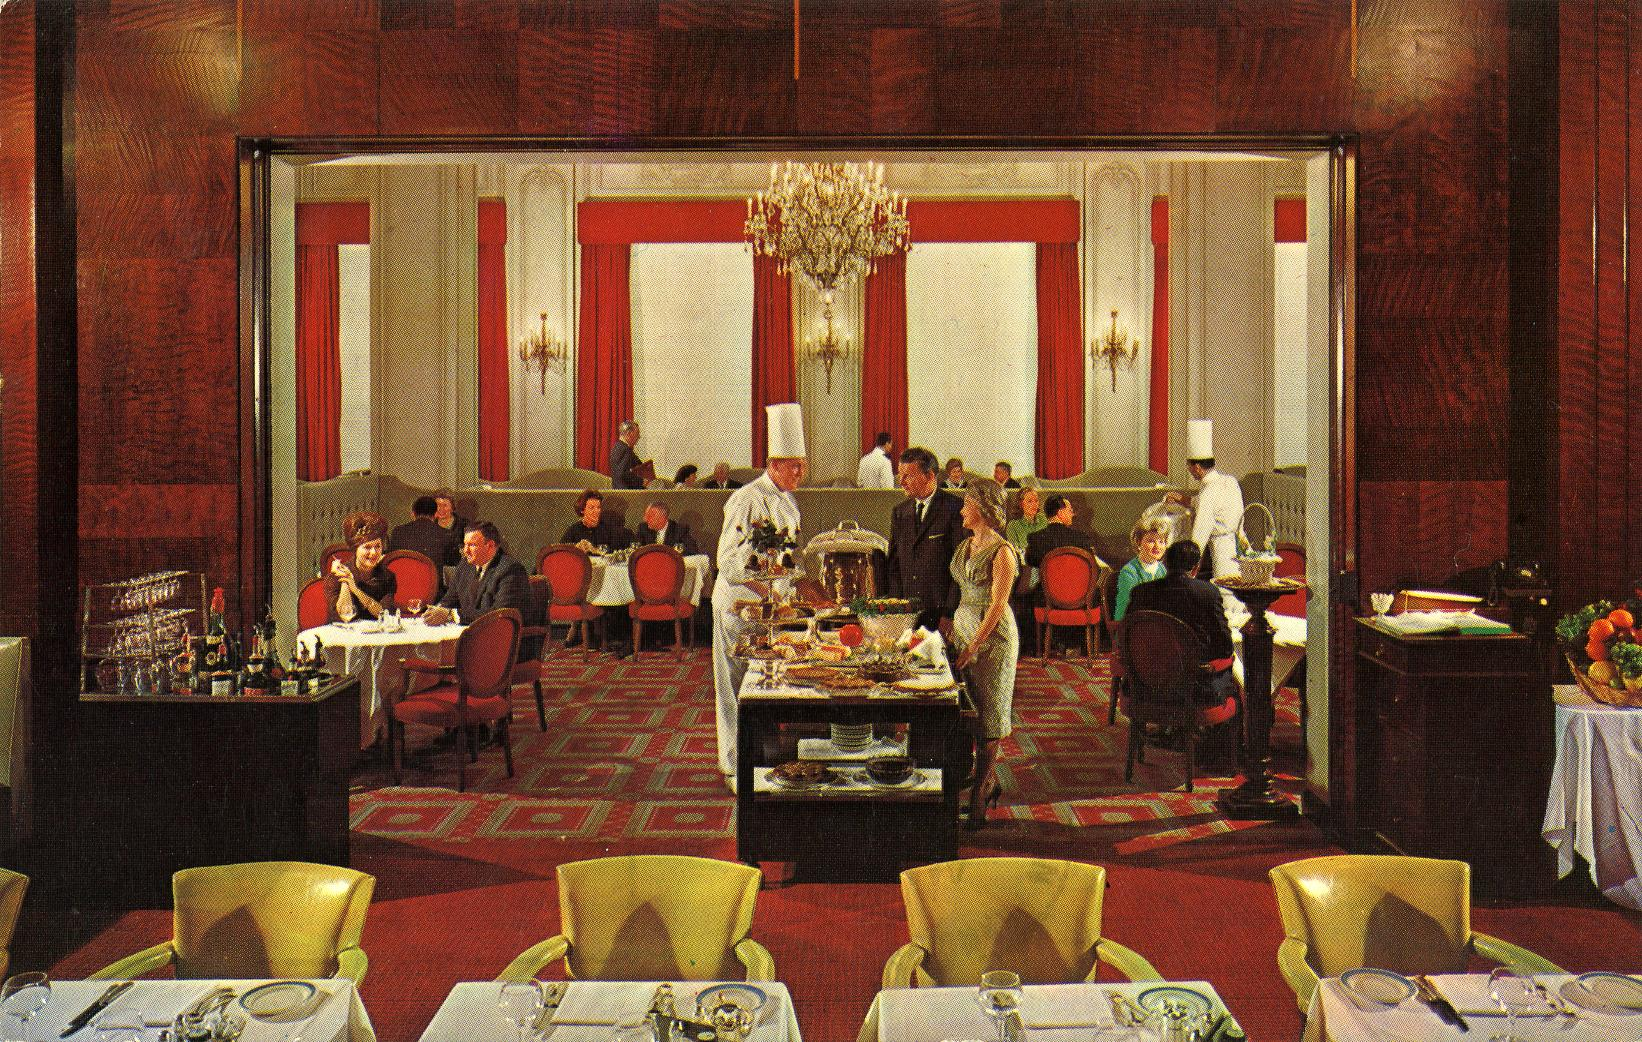 The French Room Clift Hotel San Francisco CA postmarked 1969